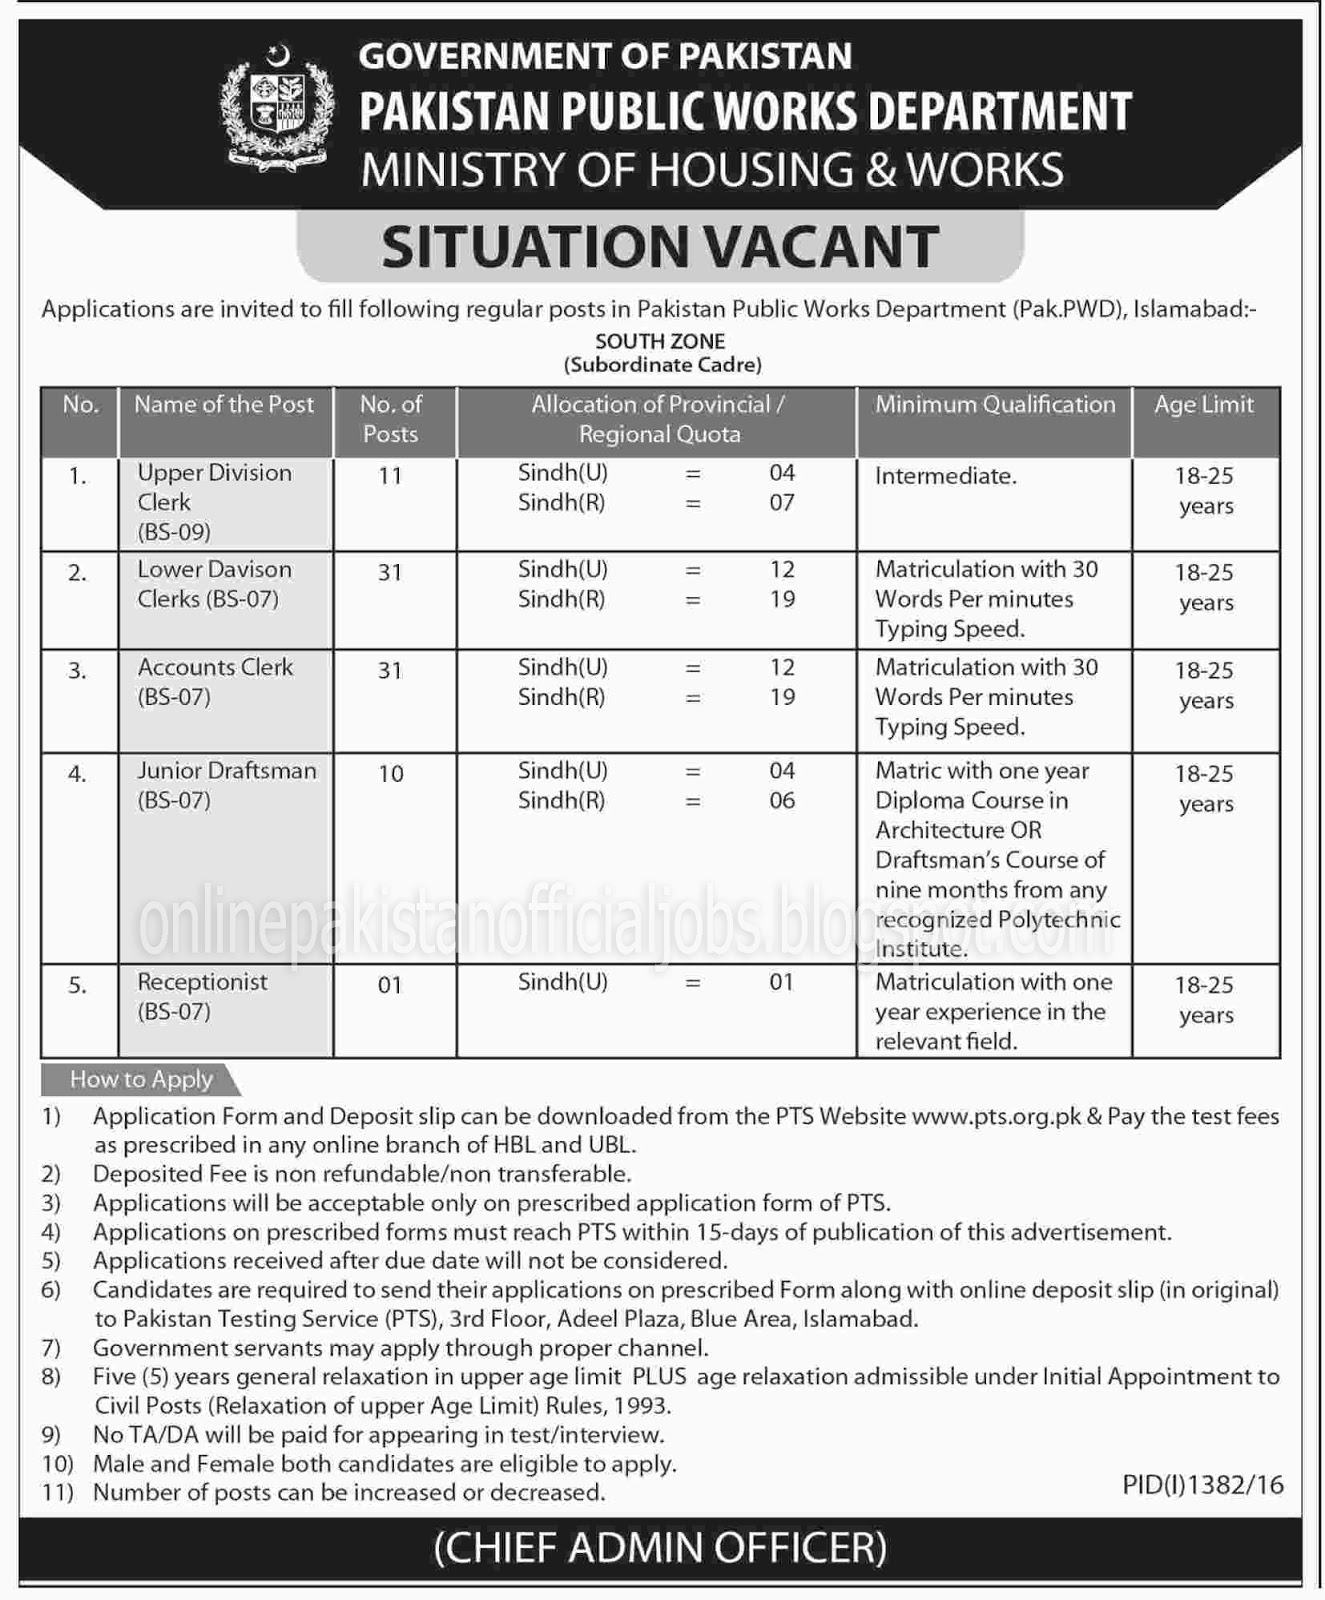 UDC,LDC Jobs In Minister Of Housing Works Pakistan